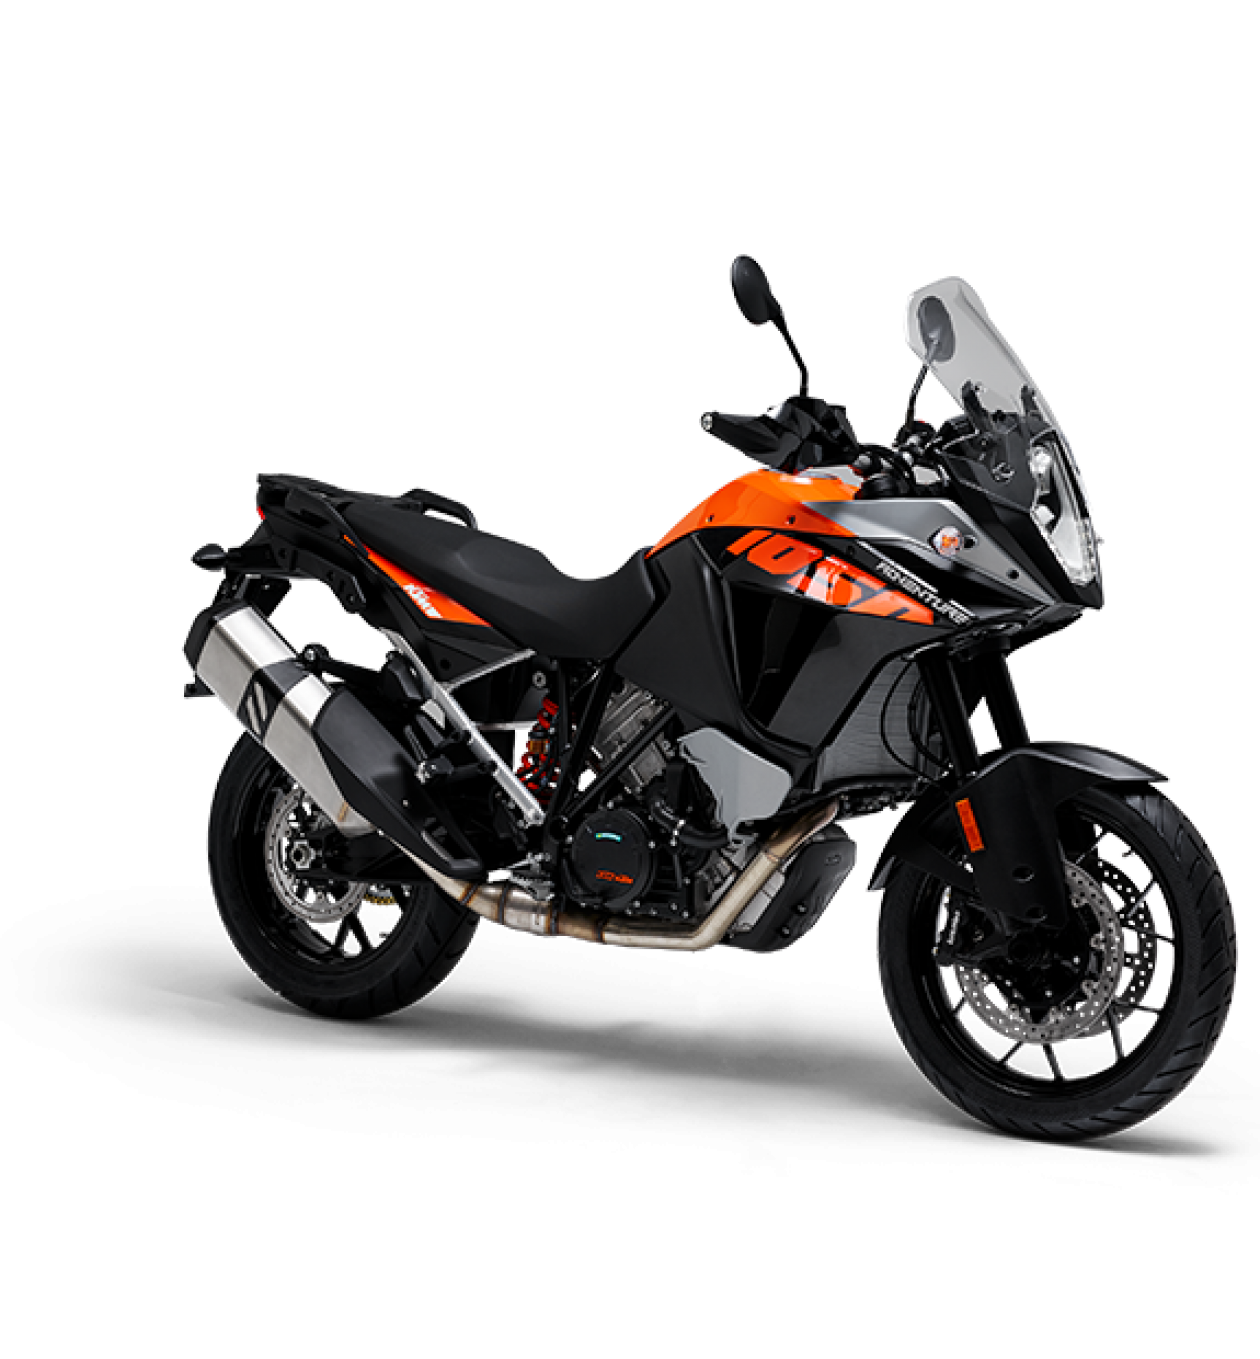 Best motorcycle and motorbike types for off road and dual adventure riding in Australia. This is a KTM 1050 Adventure bike with ABS braking